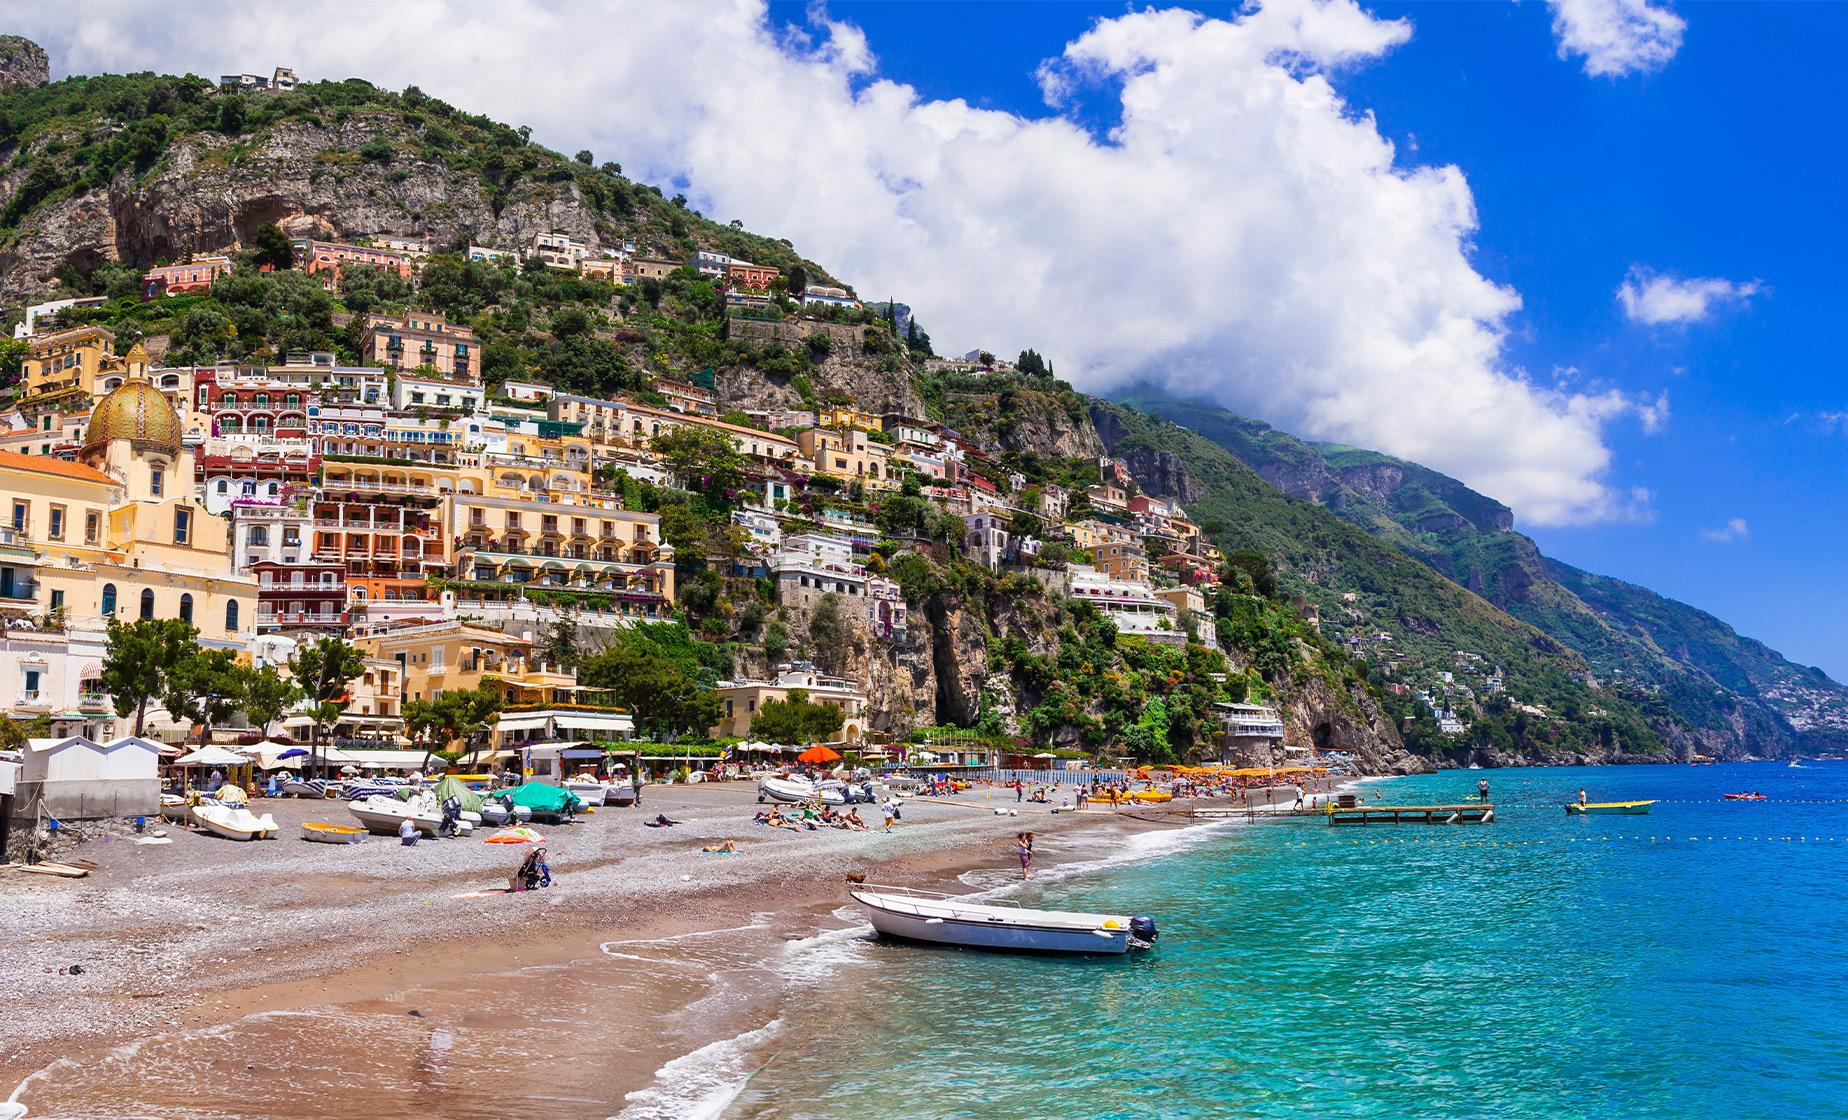 Discover Positano and Amalfi by Boat